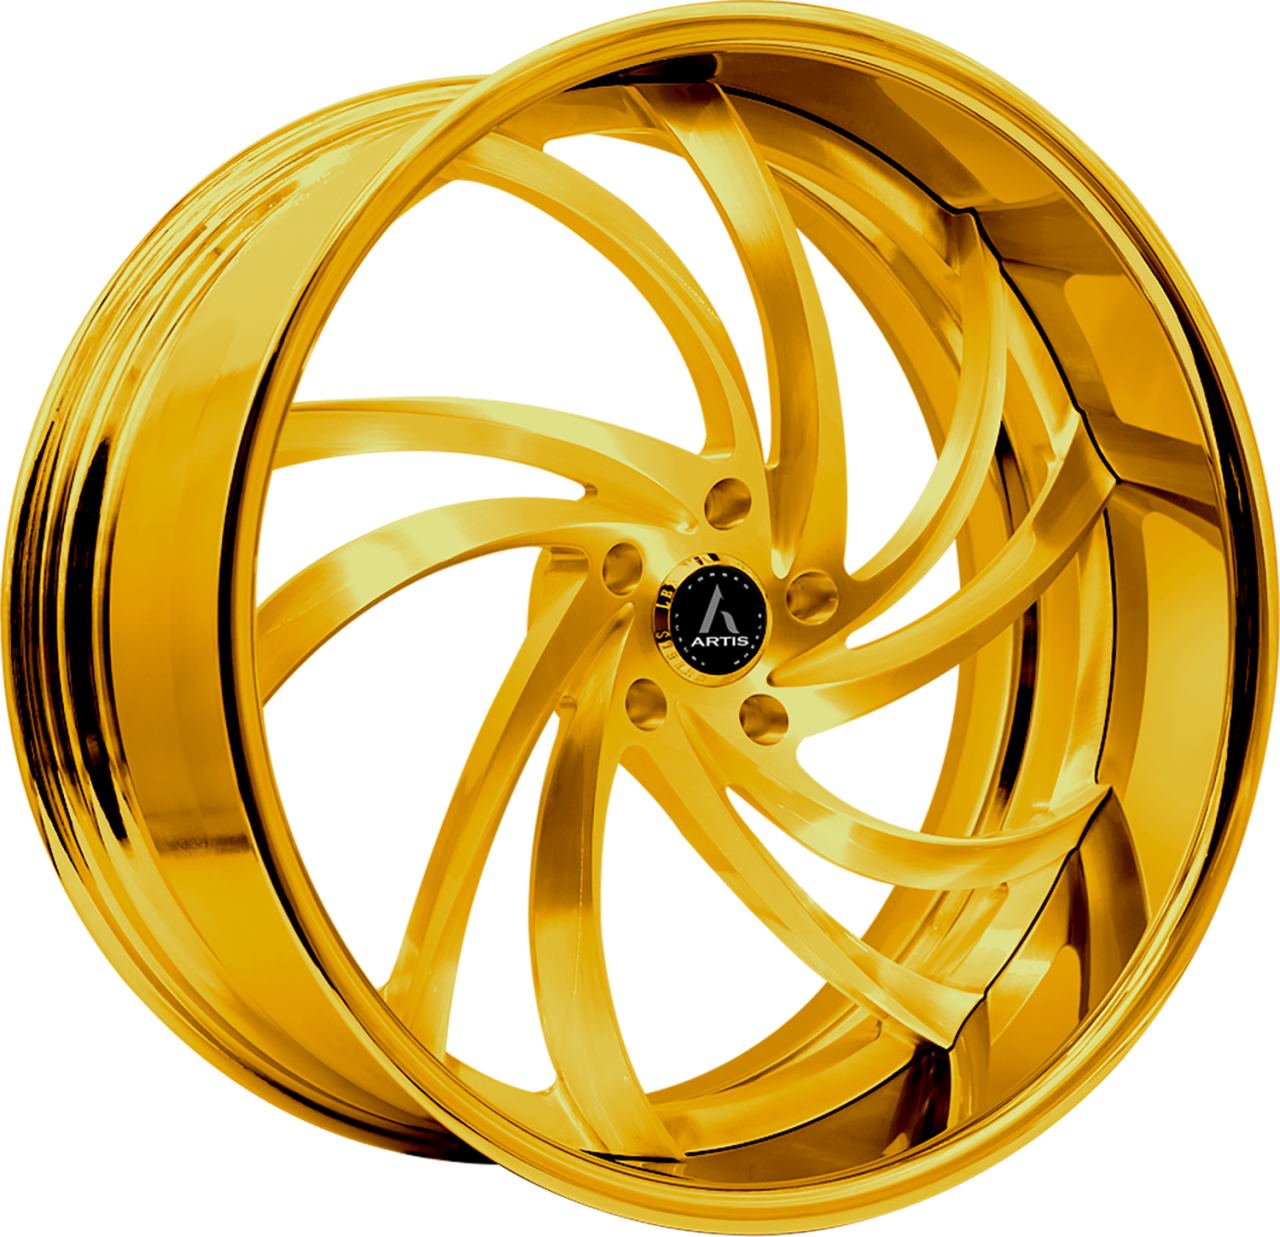 Artis Forged Twister wheel with Custom Gold finish